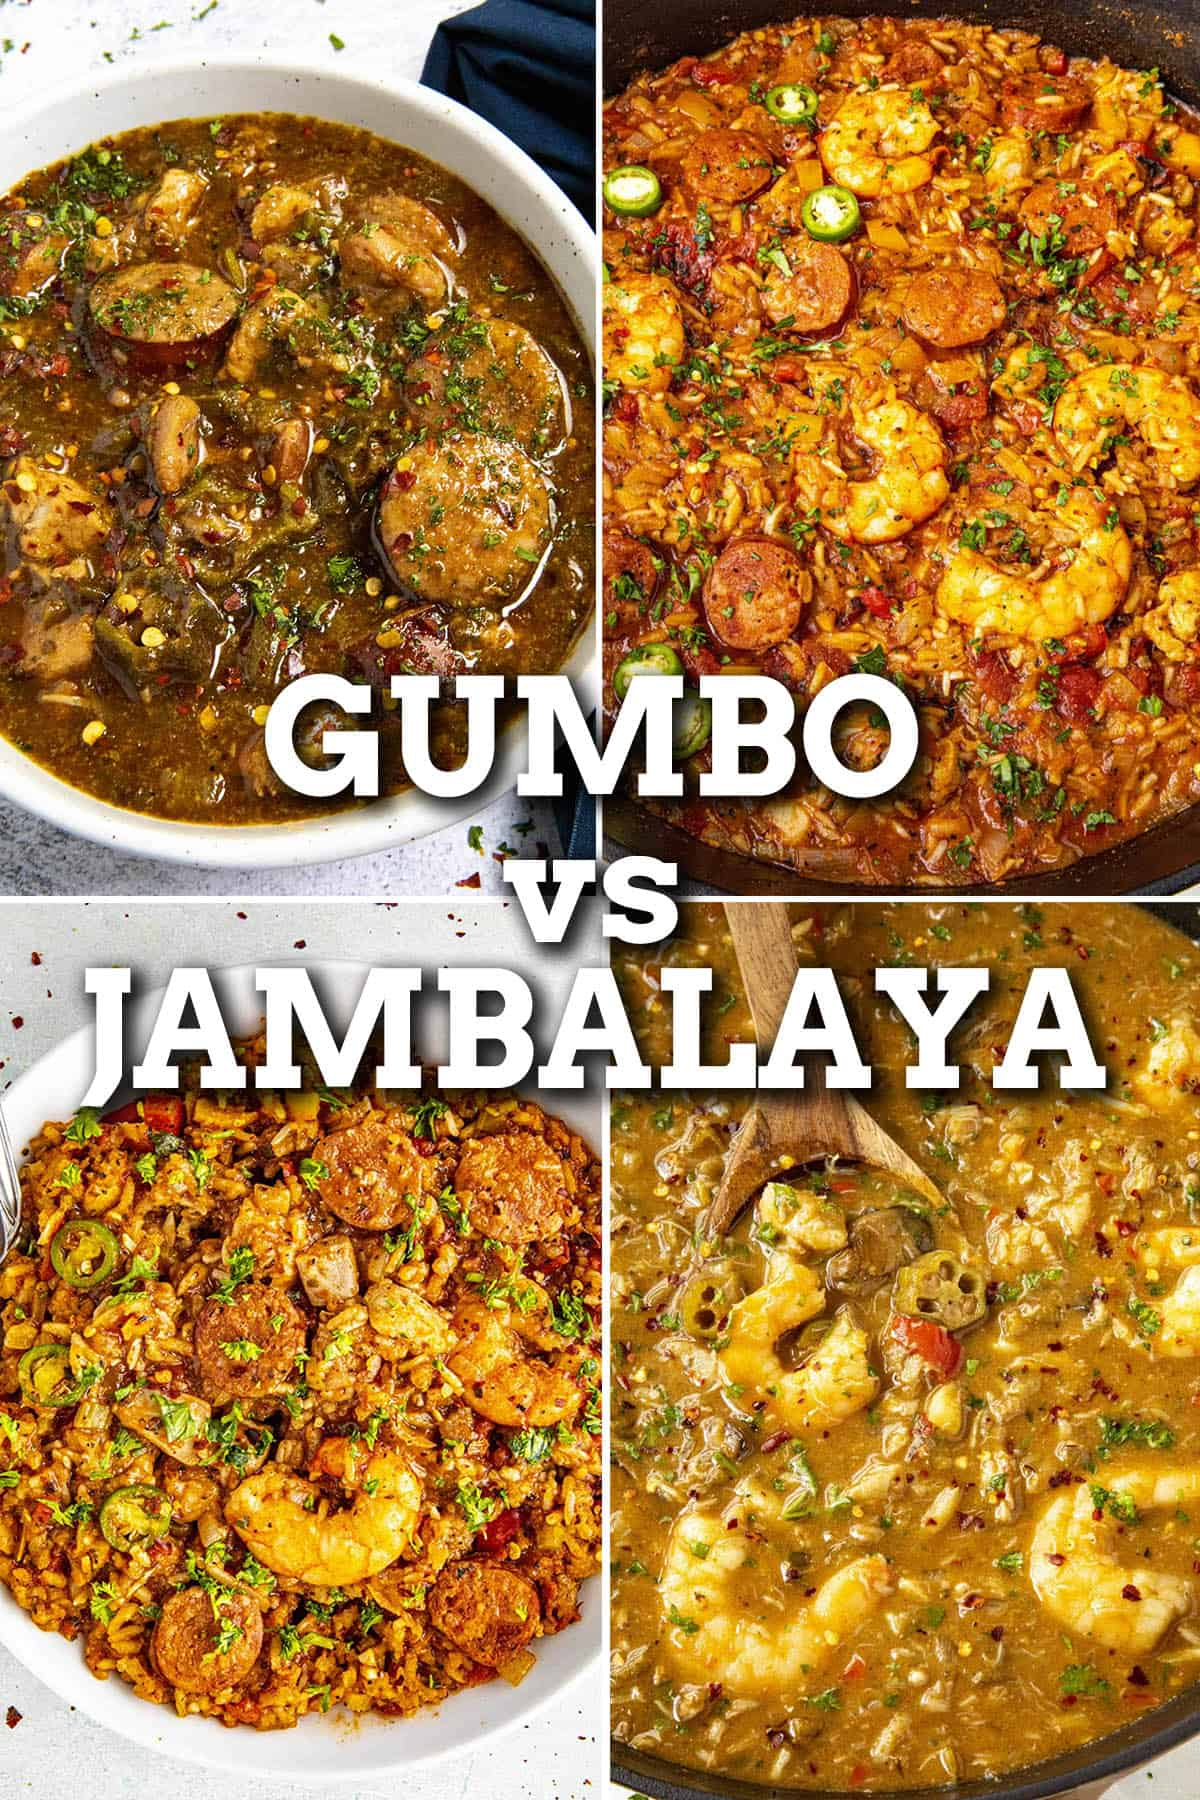 Gumbo vs. Jambalaya: What is the Difference?